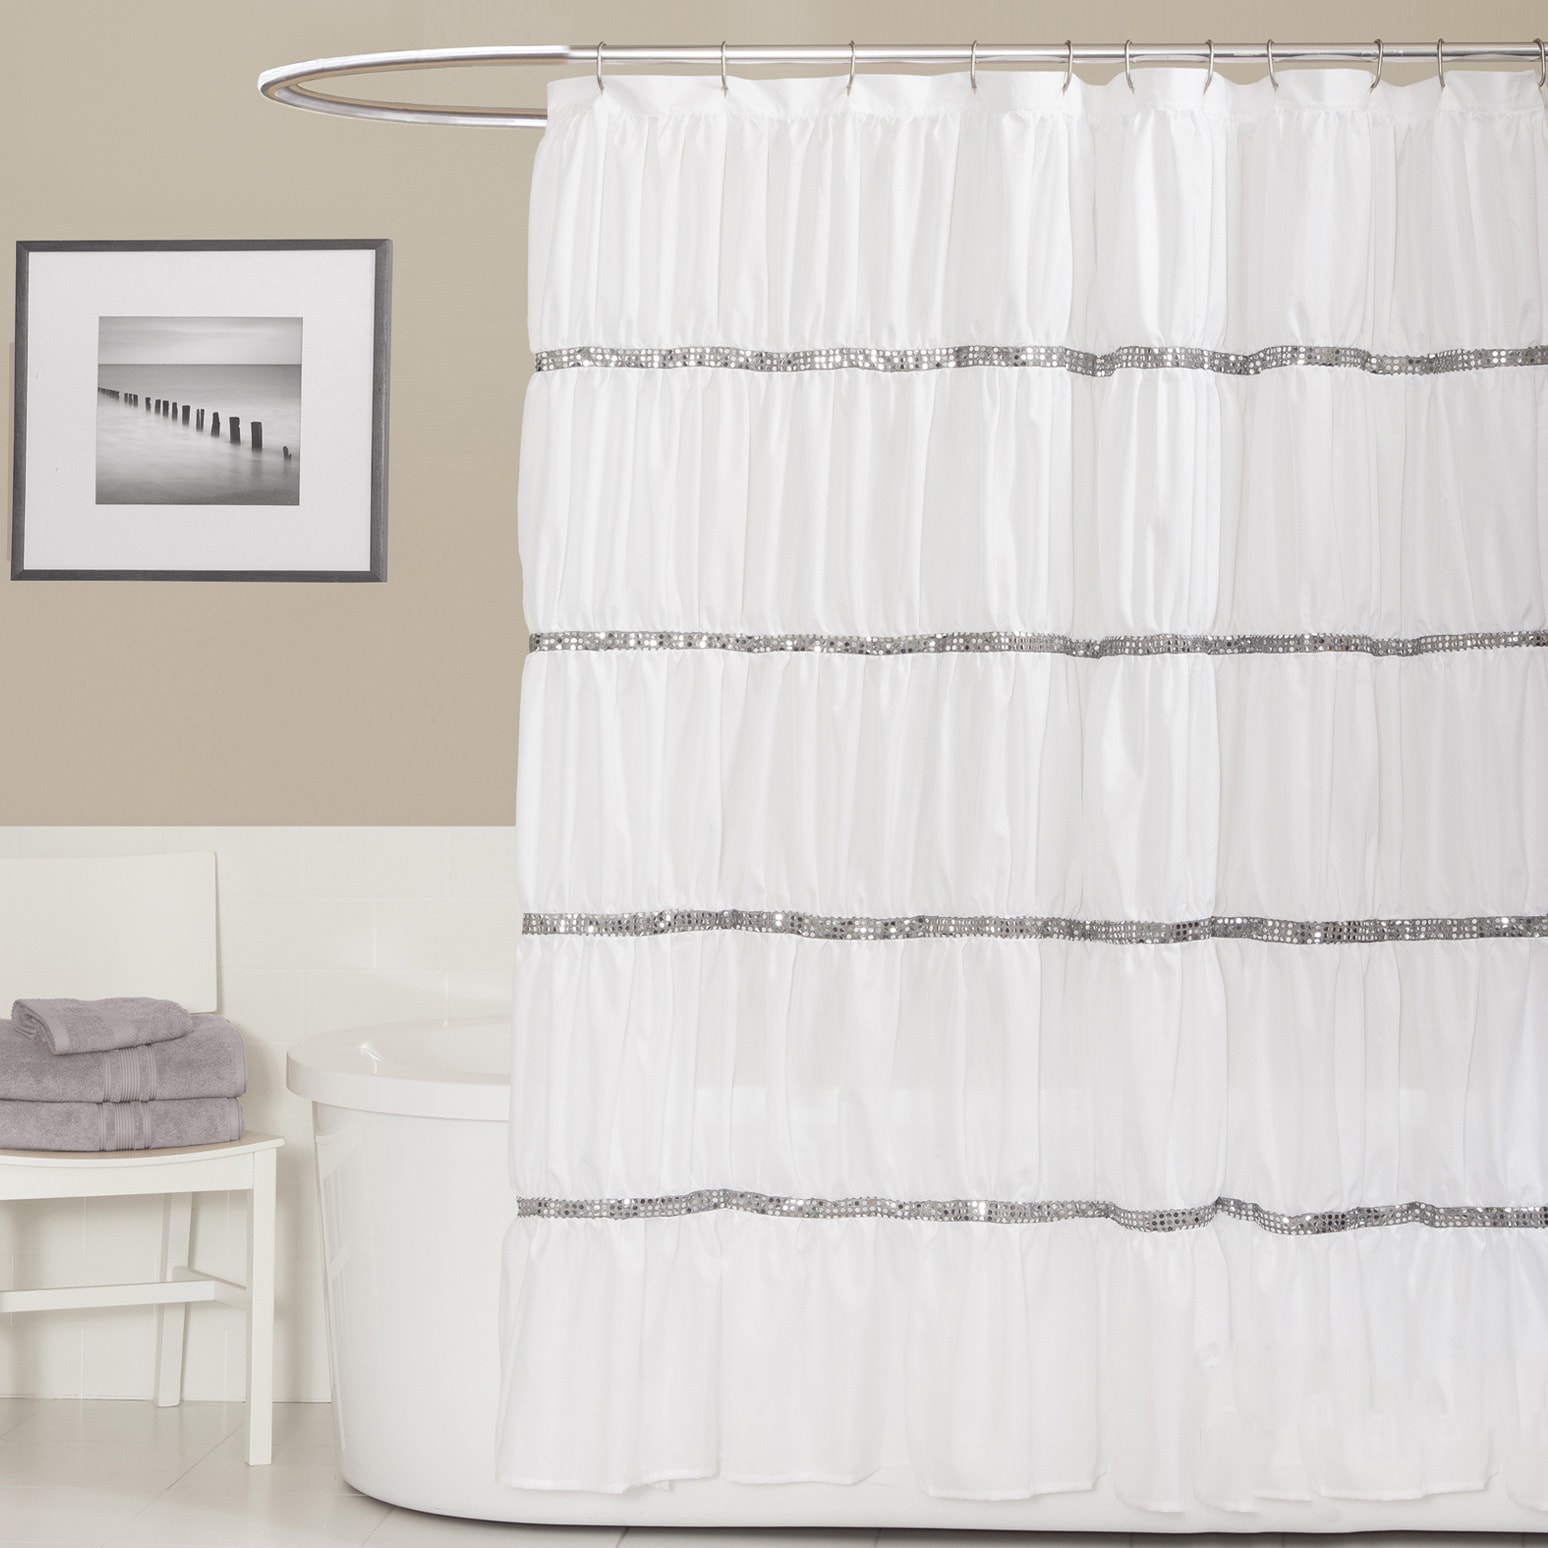 easily curtains furnishing white durable handle to home shower and design ideas curtain